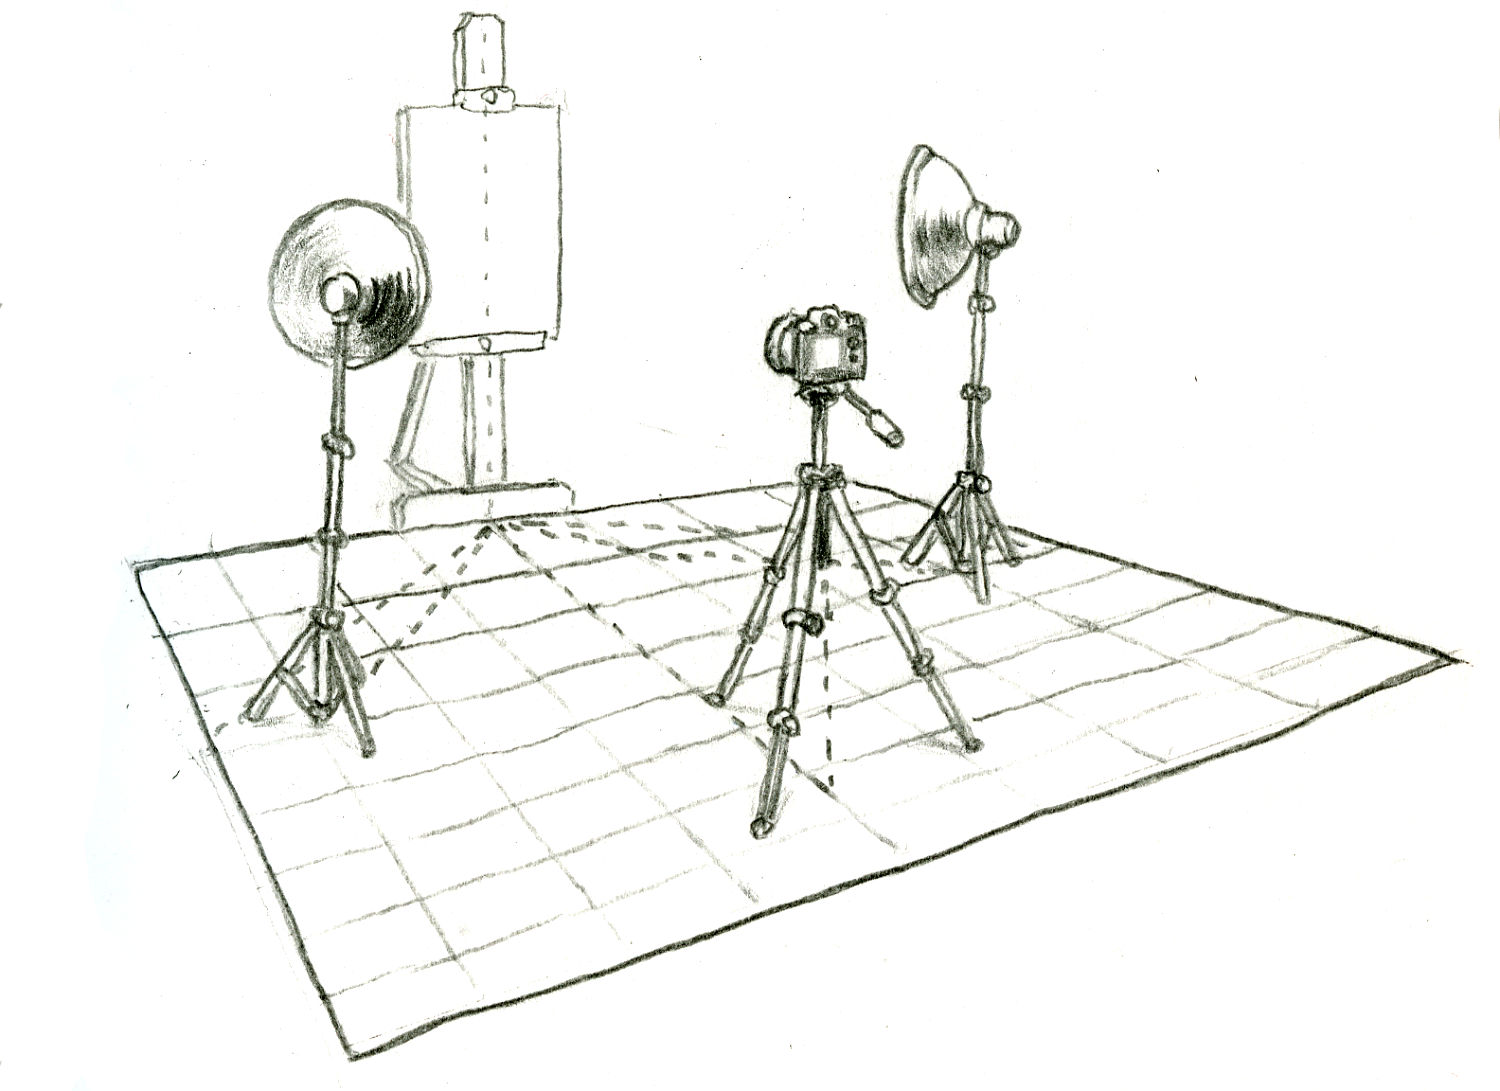 You can also use that center-line under your easel to center the base of your tripod when you set up your camera.